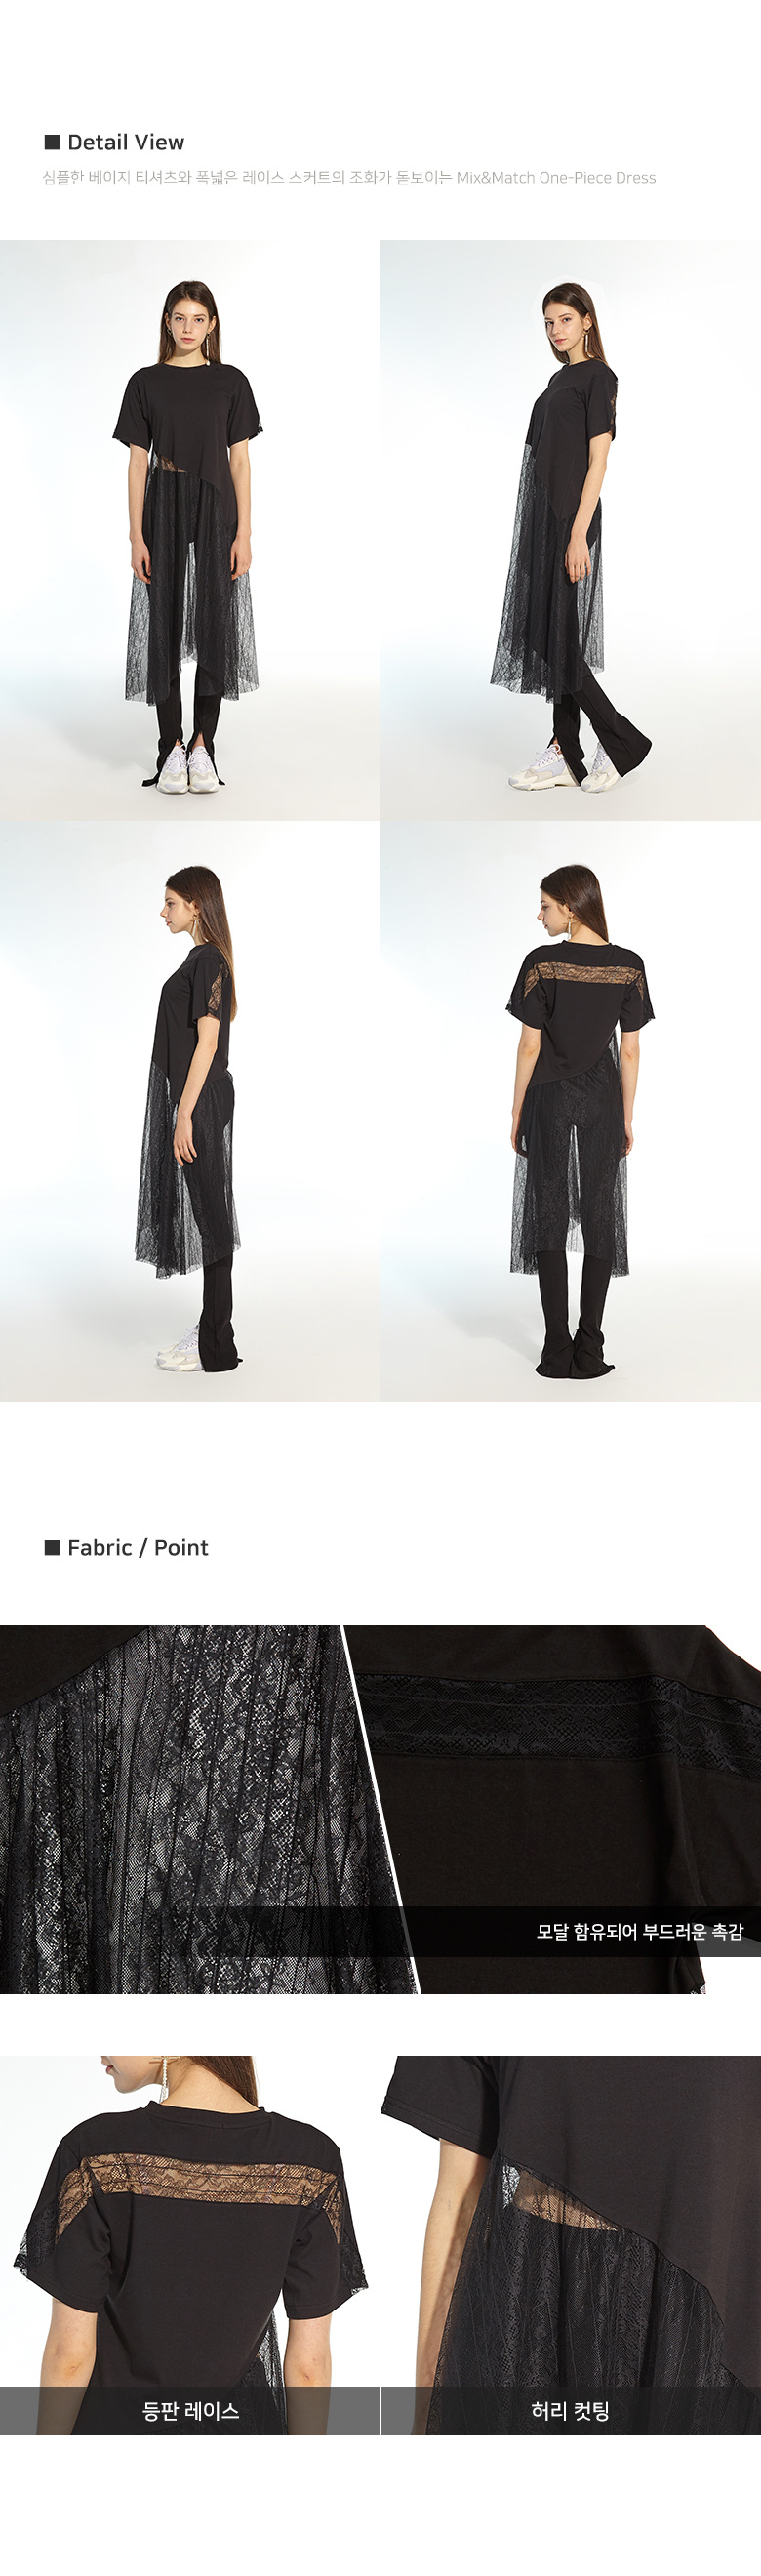 준바이준케이(JUN BY JUN K) [2차리오더]See-Through T-shirt Dress(Black)